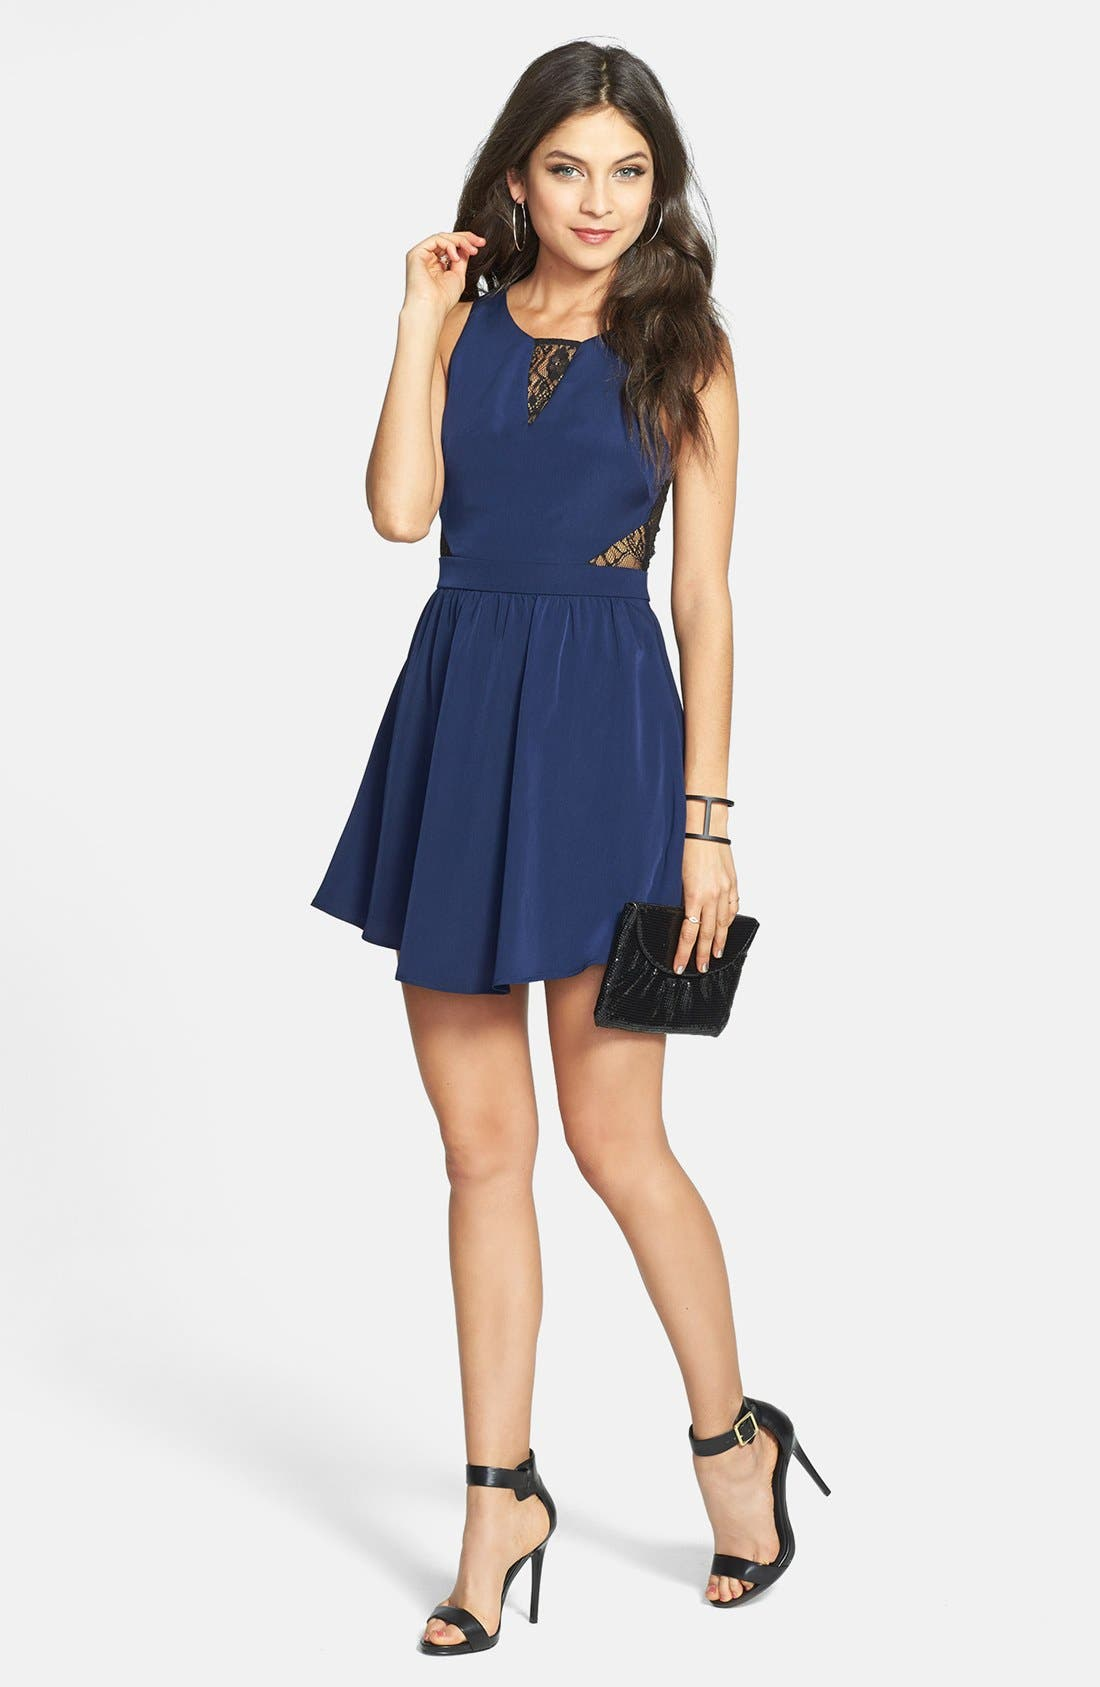 Alternate Image 1 Selected - Lush Lace Inset Skater Dress (Juniors)